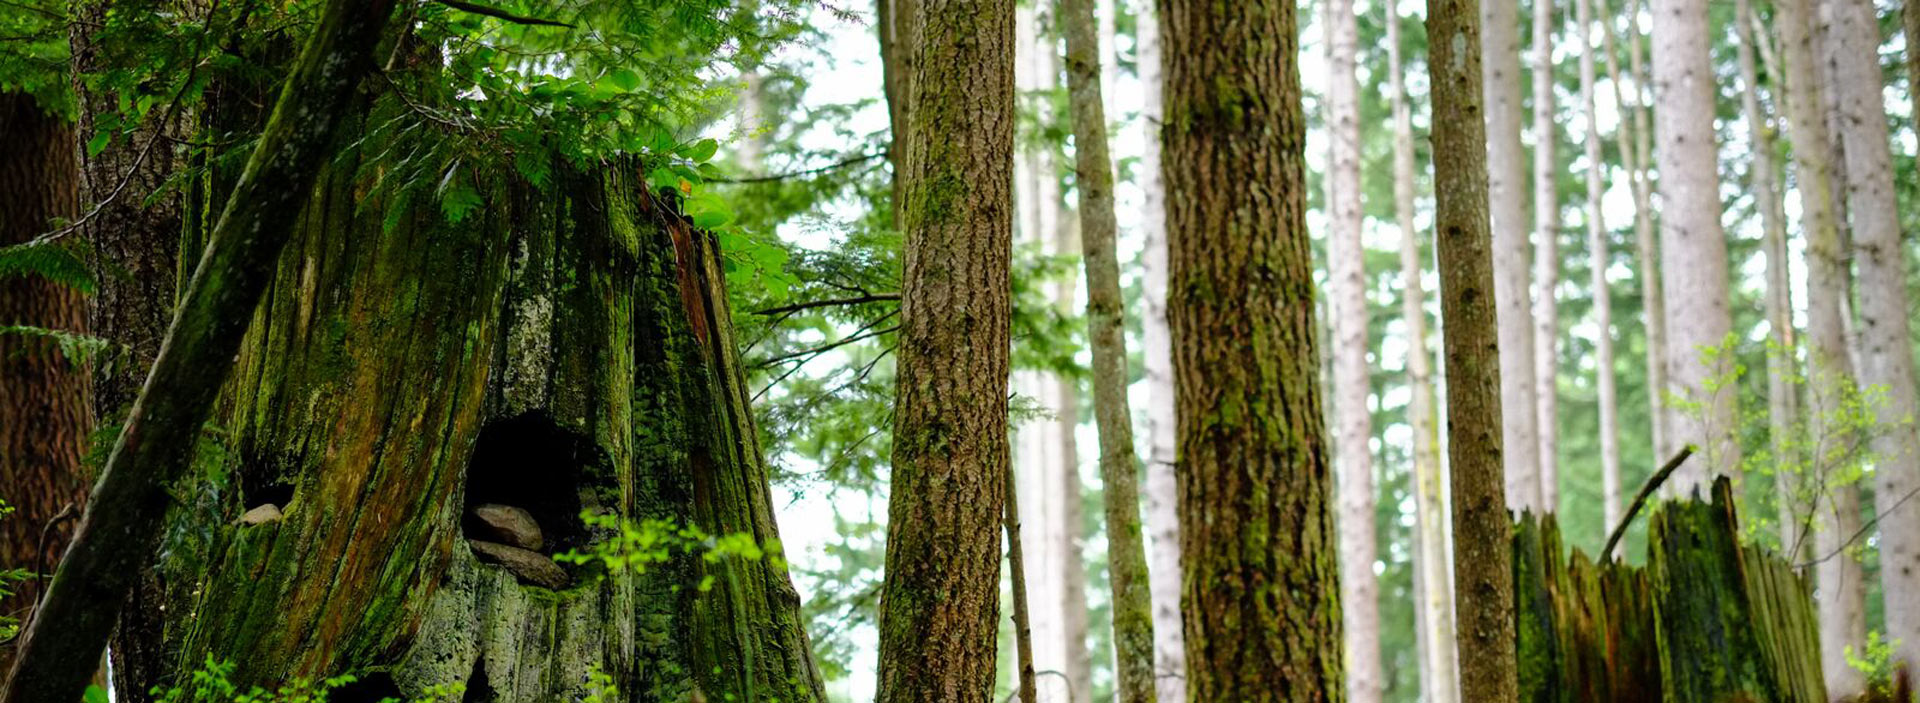 moss and plant covered tree trunk with a wooded background